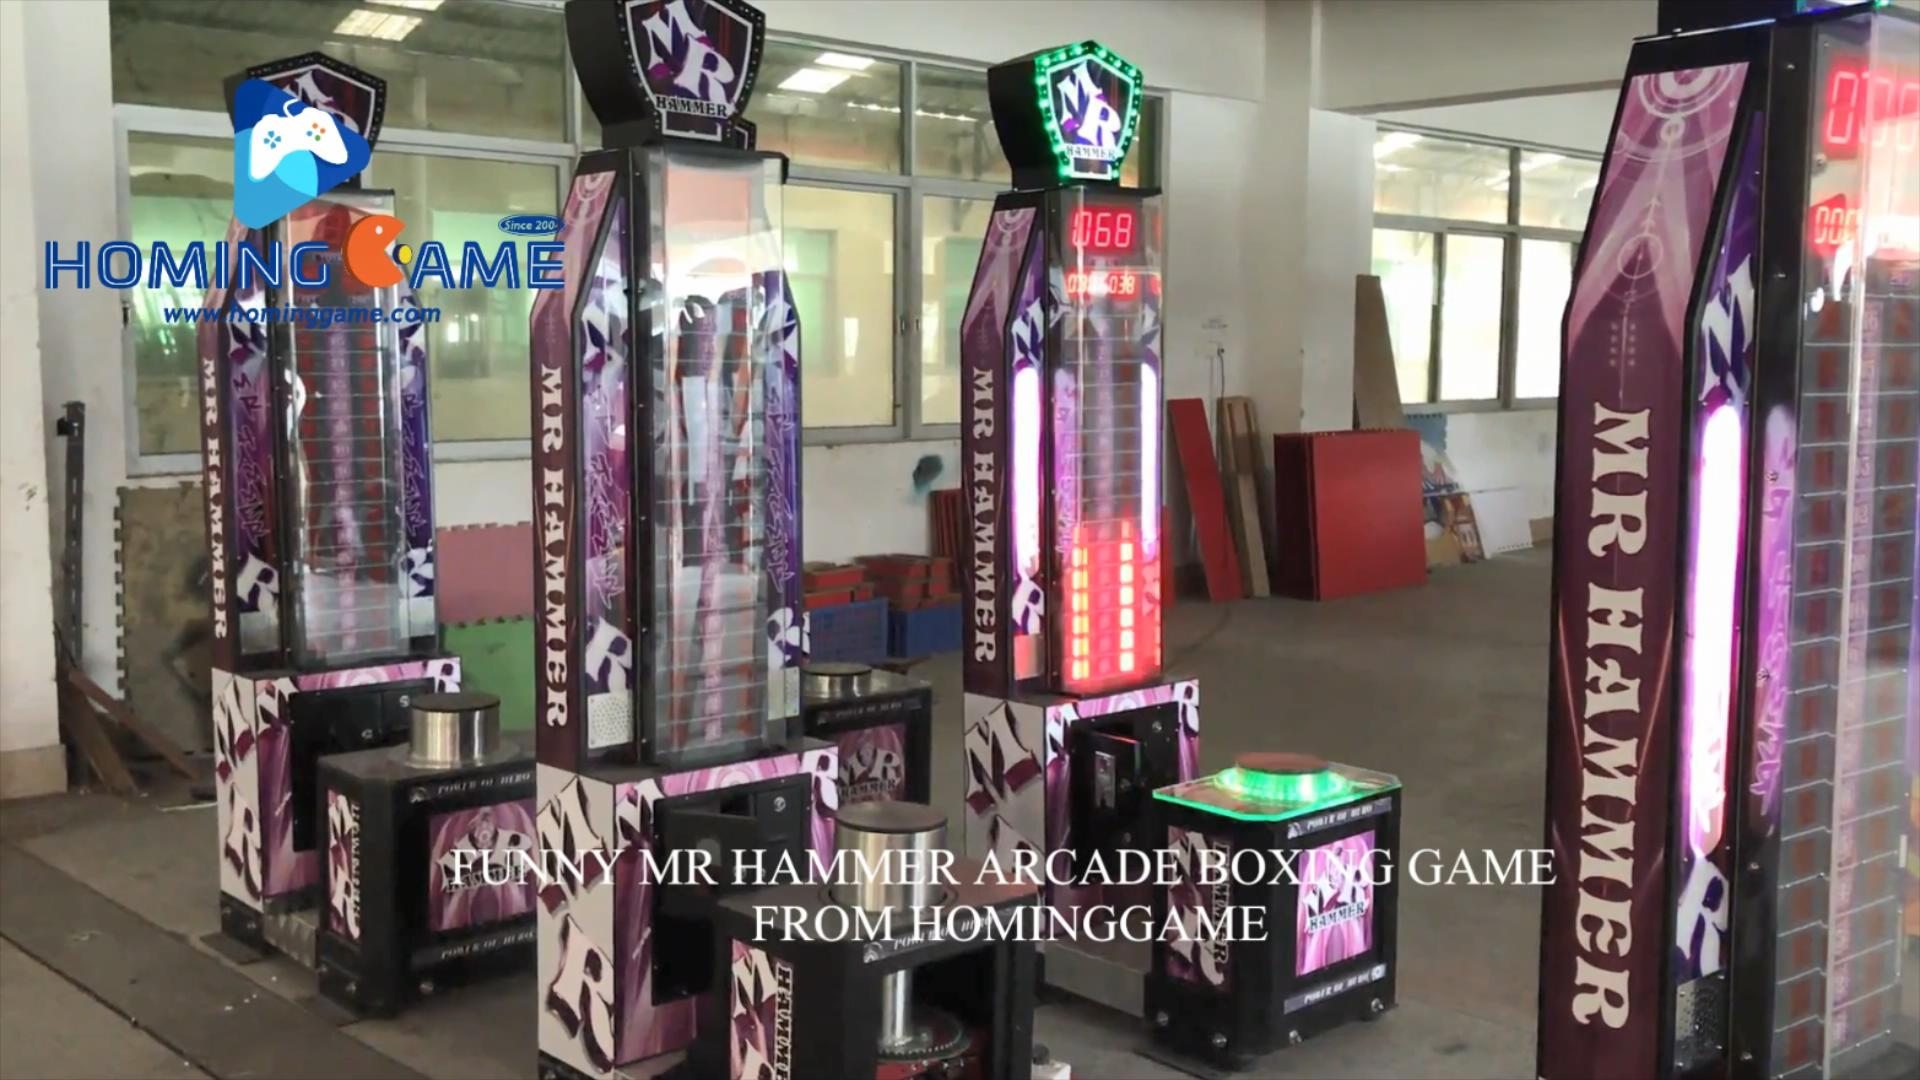 2020 HomingGame Most Popular Mr Hammer Amusement Arcade Boxing Game Machine(call whatsapp:+8618688409495),game machine,game machine for sale,game machine price,game machine supplier,game machine manufacturer,game+machine,mr hammer arcade game machine,Mr hammer lottery arcade game machine,Mr Hammer II lottery arcade game machine,Mr hammer II arcade game machine,Mr hammer game machine,hammer arcade game machine,lottery game machine,redemption game machine,lottery redemption game machine,amusement machine,game equipment,amusement park game equipment,indoor game machine,electrical game machine,amsuement machine,entertainment game machine,indoor game,game room game machine,kids redemption game machine,kids game machine,kids game equipment,entertainment game,family entertainment game machine,hominggame,www.hominggame.com,gametube.hk,www.gametube.hk,hominggame Mr Hammer arcade game machine,hominggame game machine,hominggame arcade game machine,hominggame redemption game machine,hominggame lottery game machine